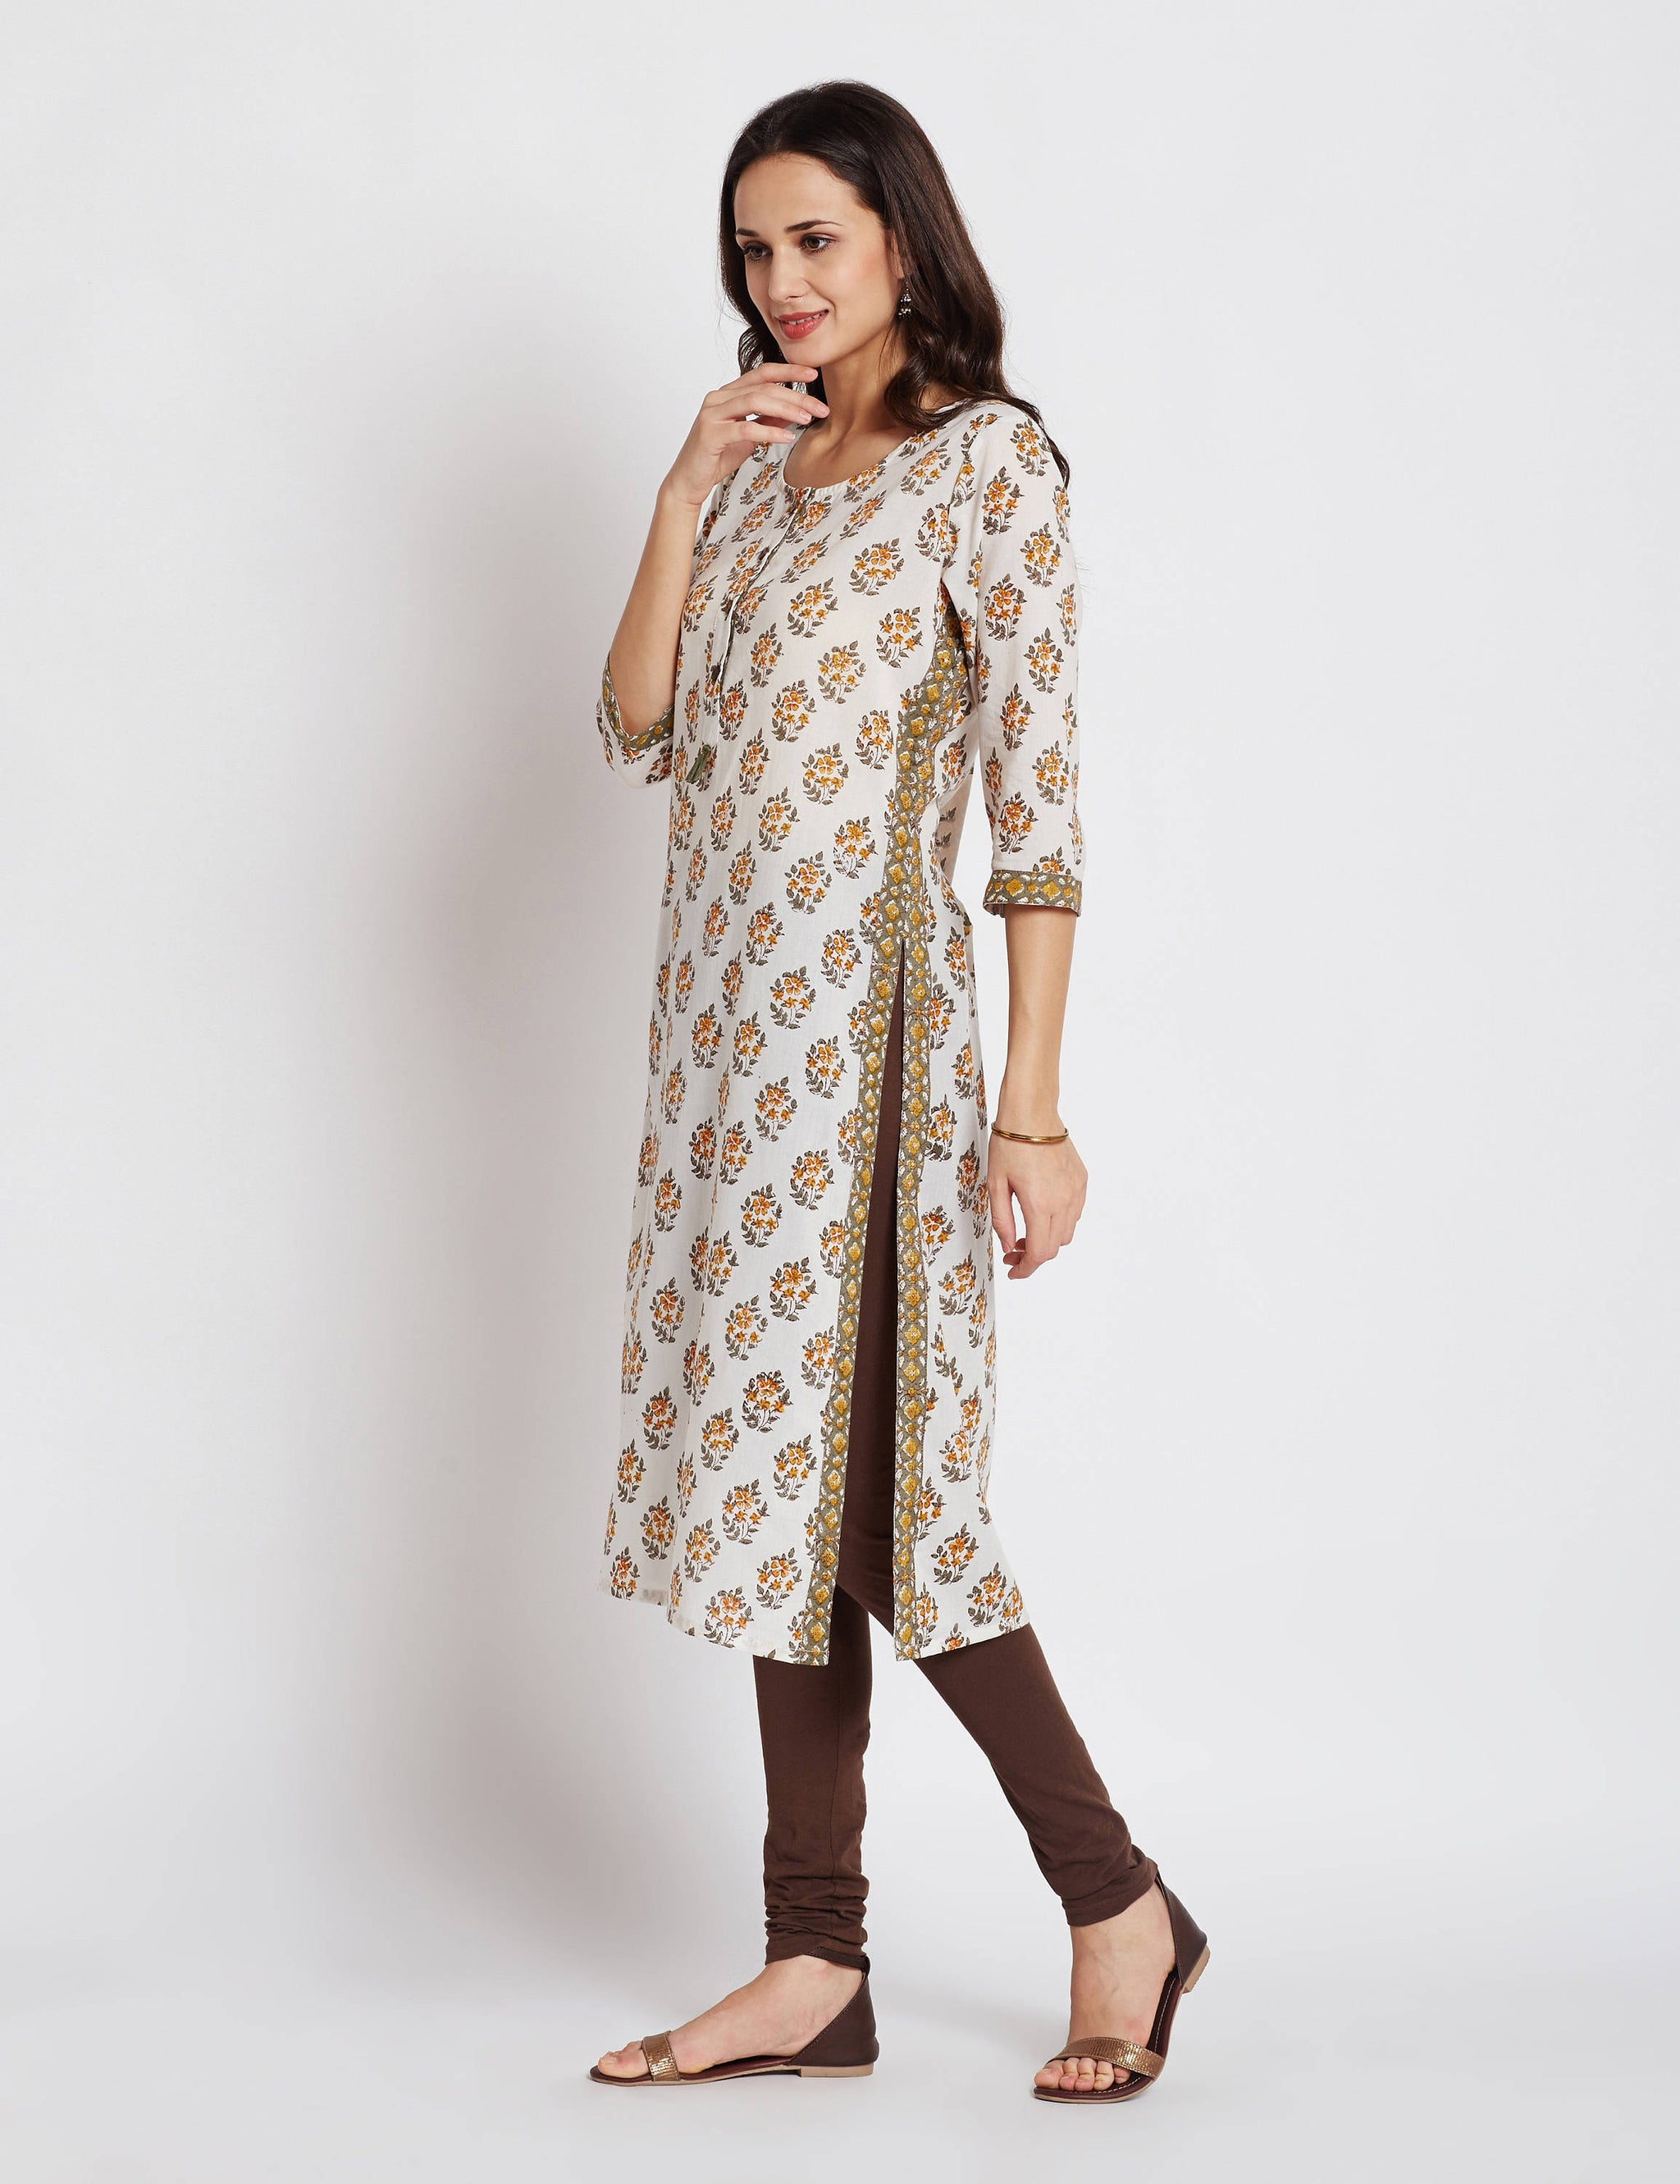 Hand block printed ethnic long Indian kurta with border detailing and front button placket